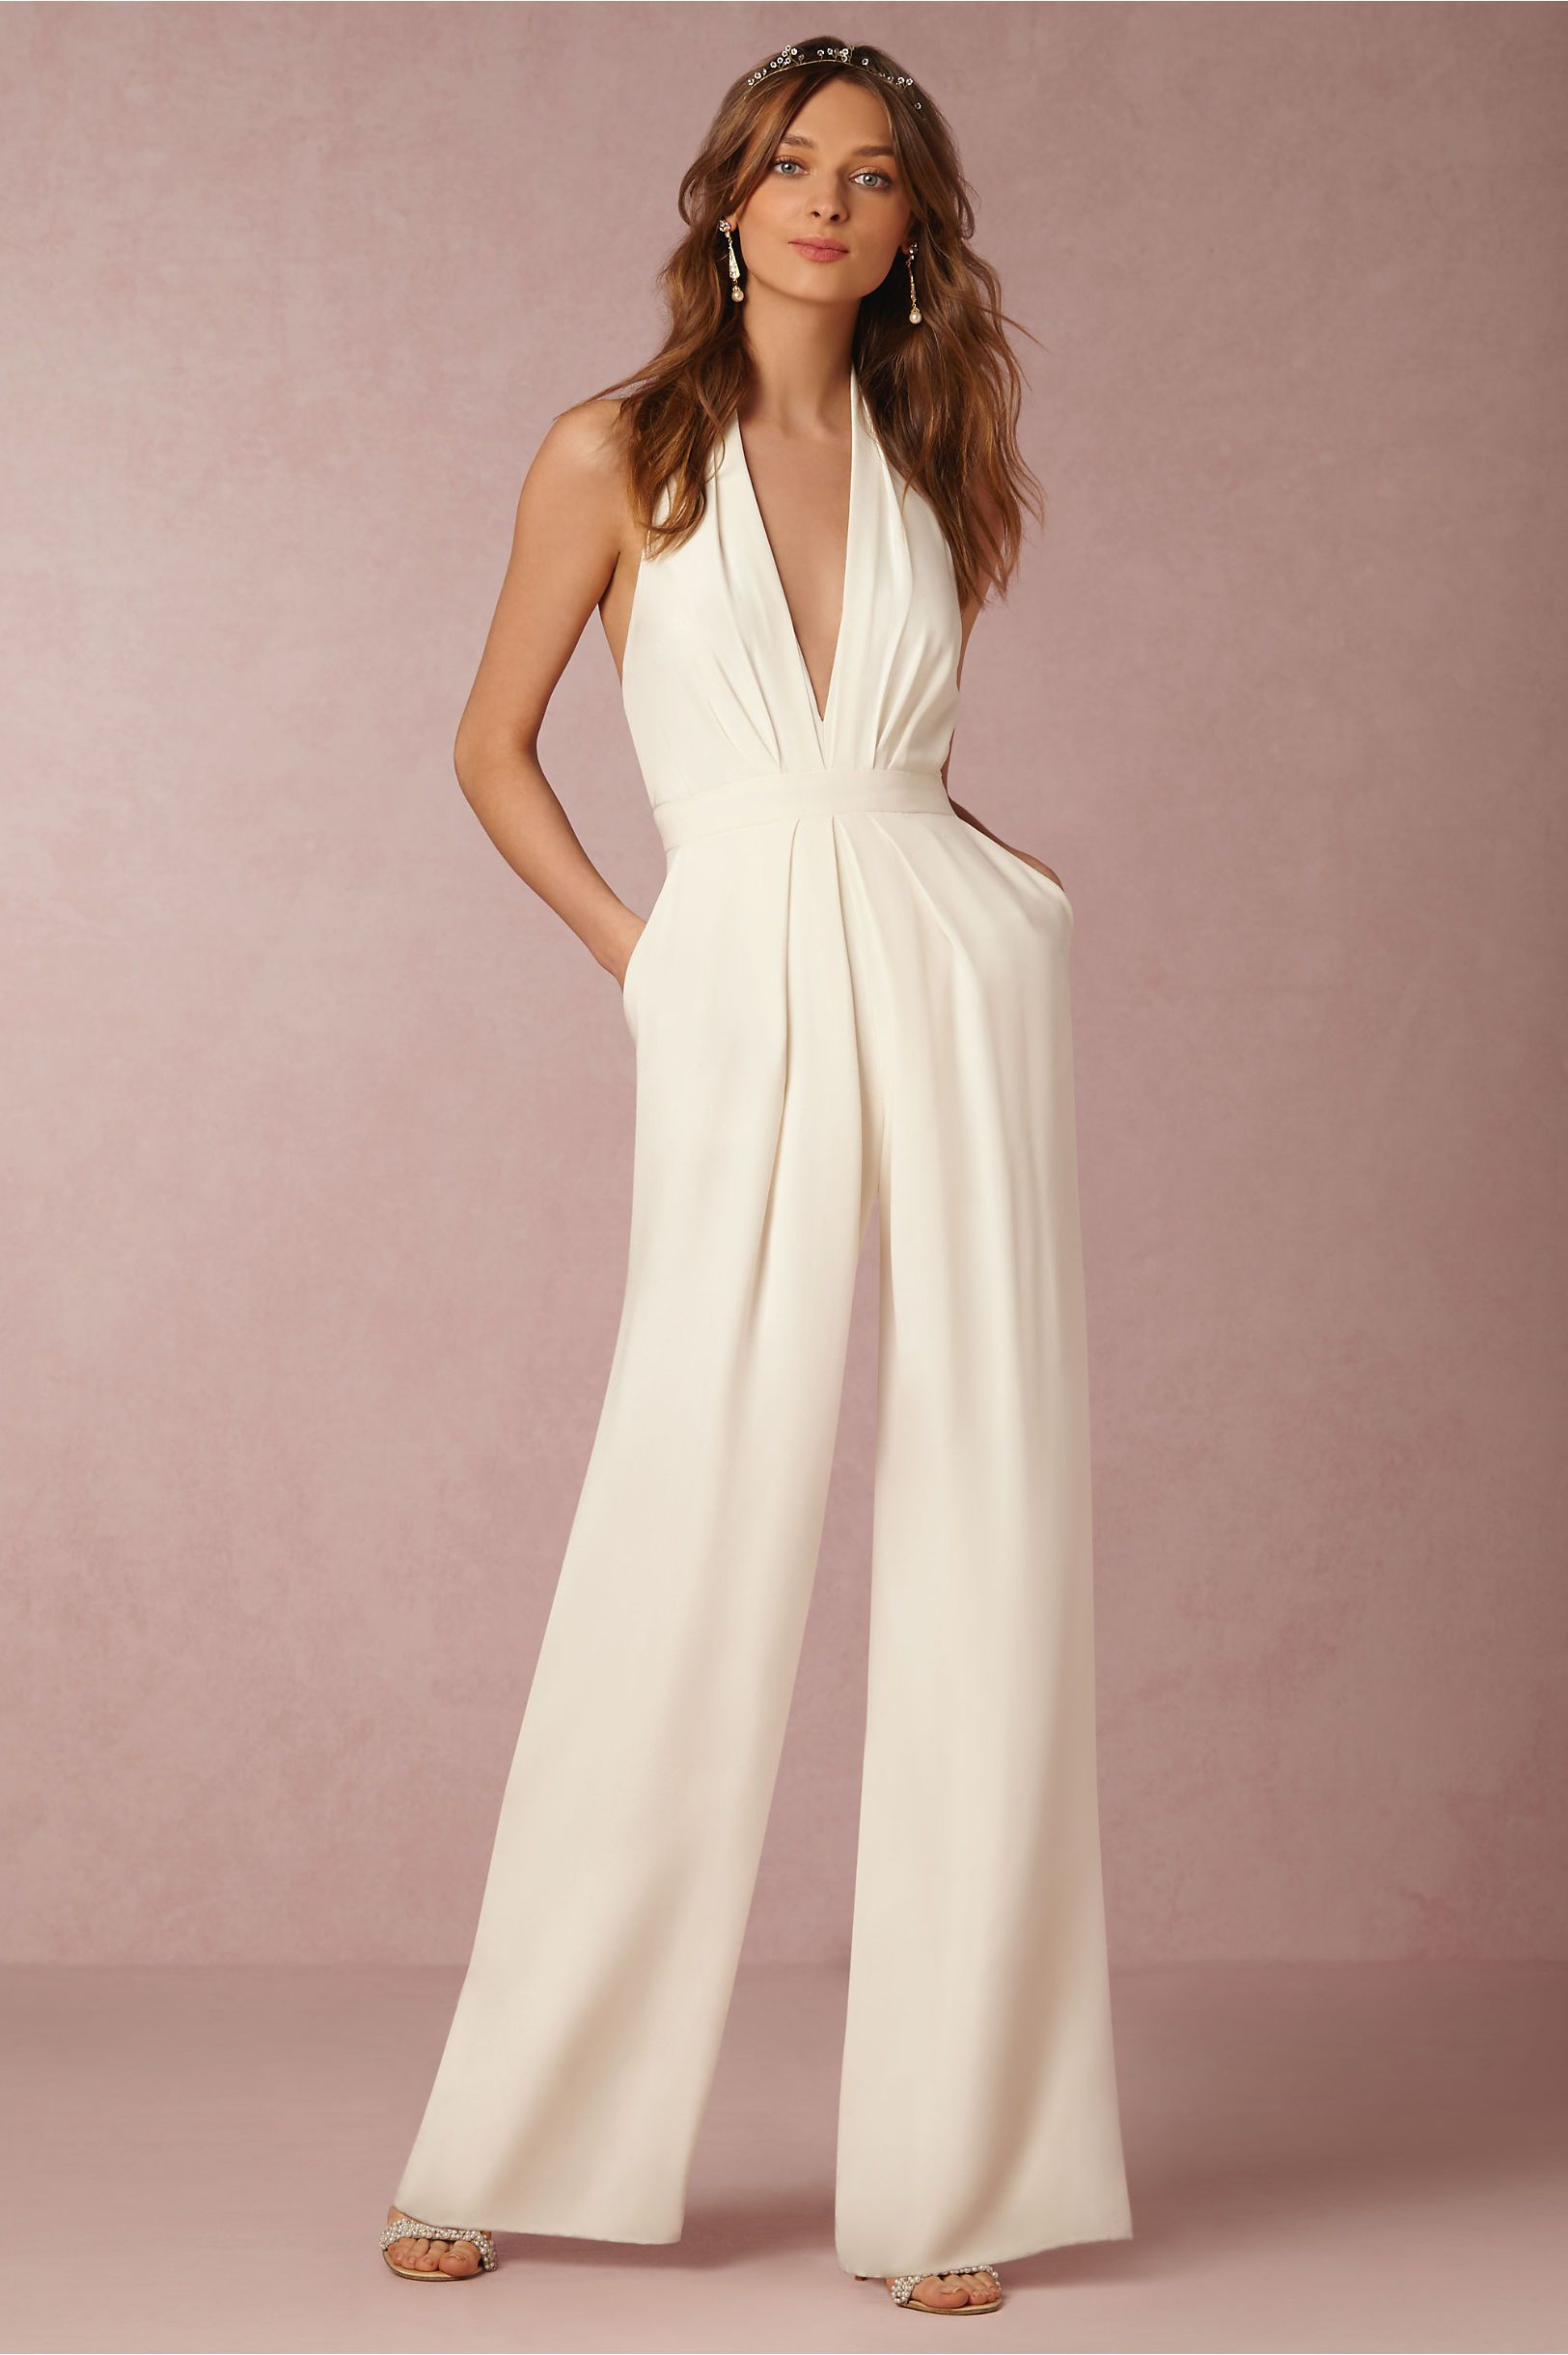 Bridesmaid dress lace chiffon jumpsuit